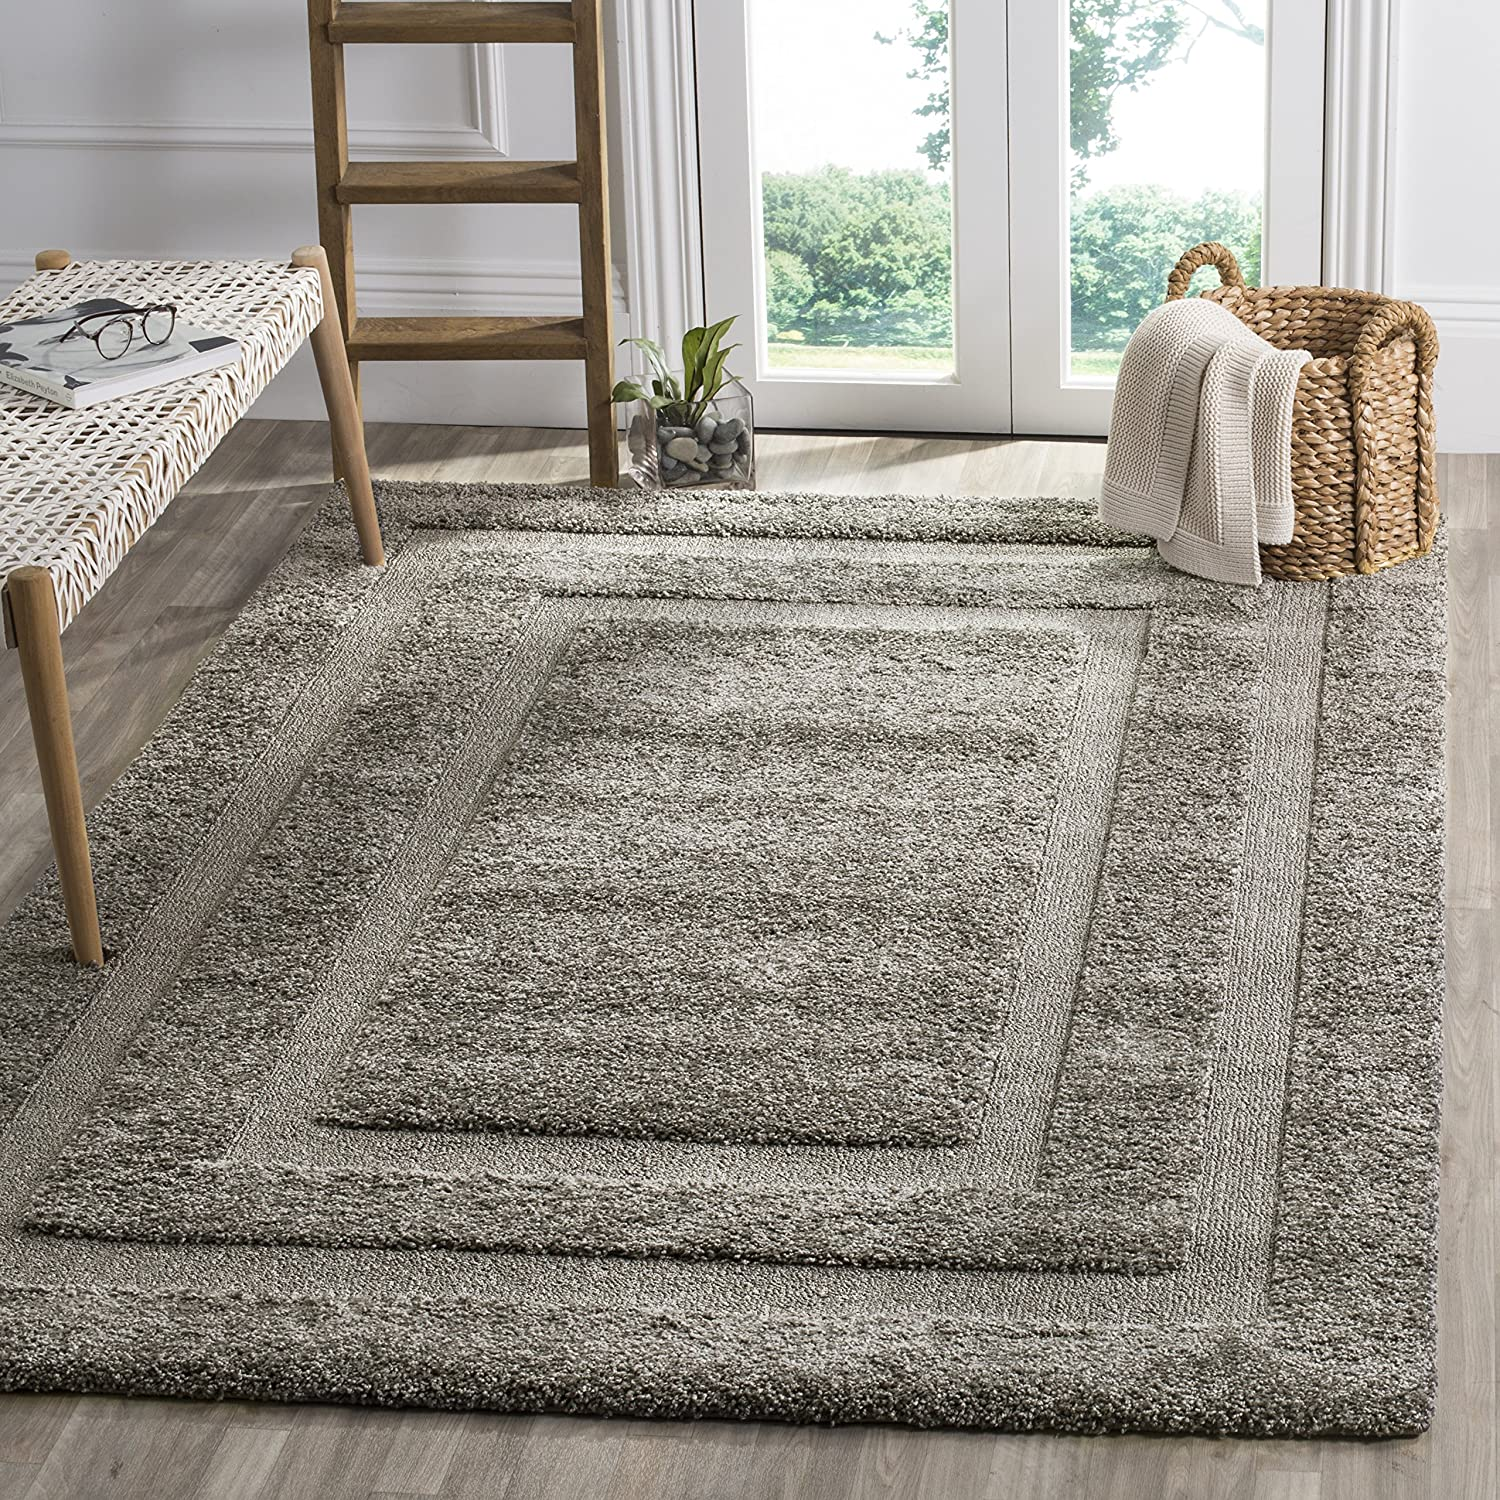 Safavieh Shadow Box Shag Collection SG454-8080 Grey Area Rug (4